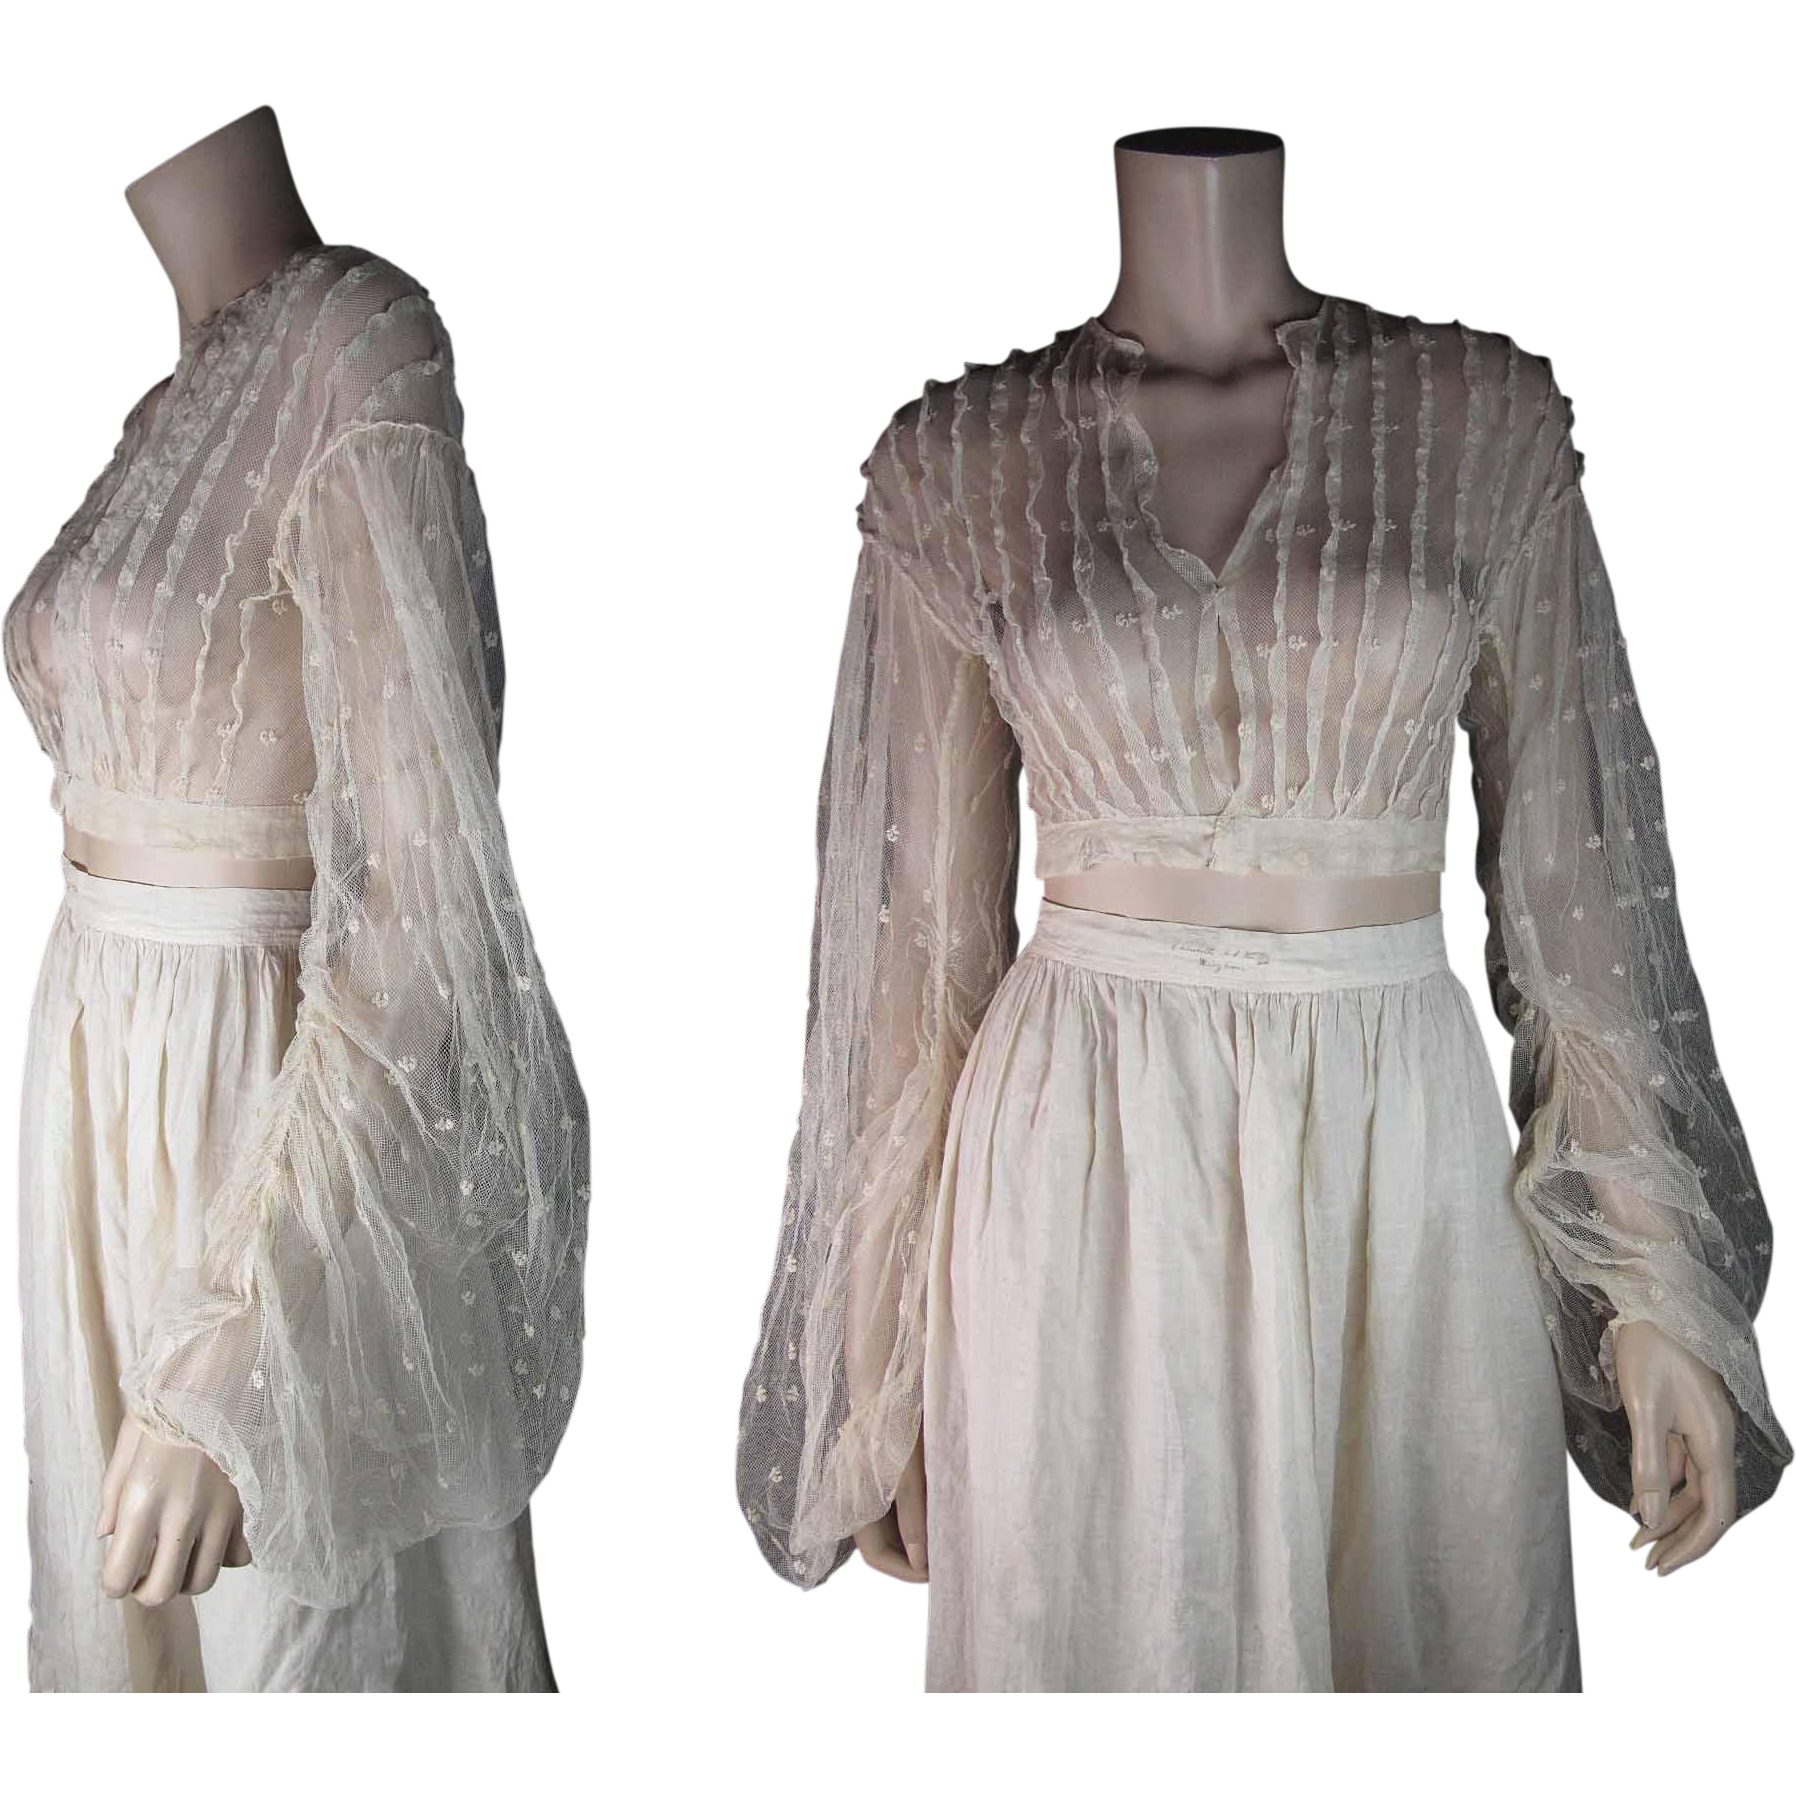 Scarce Antique 1860's Victorian Sheer Lace Overbodice With Dramatic Sleeves